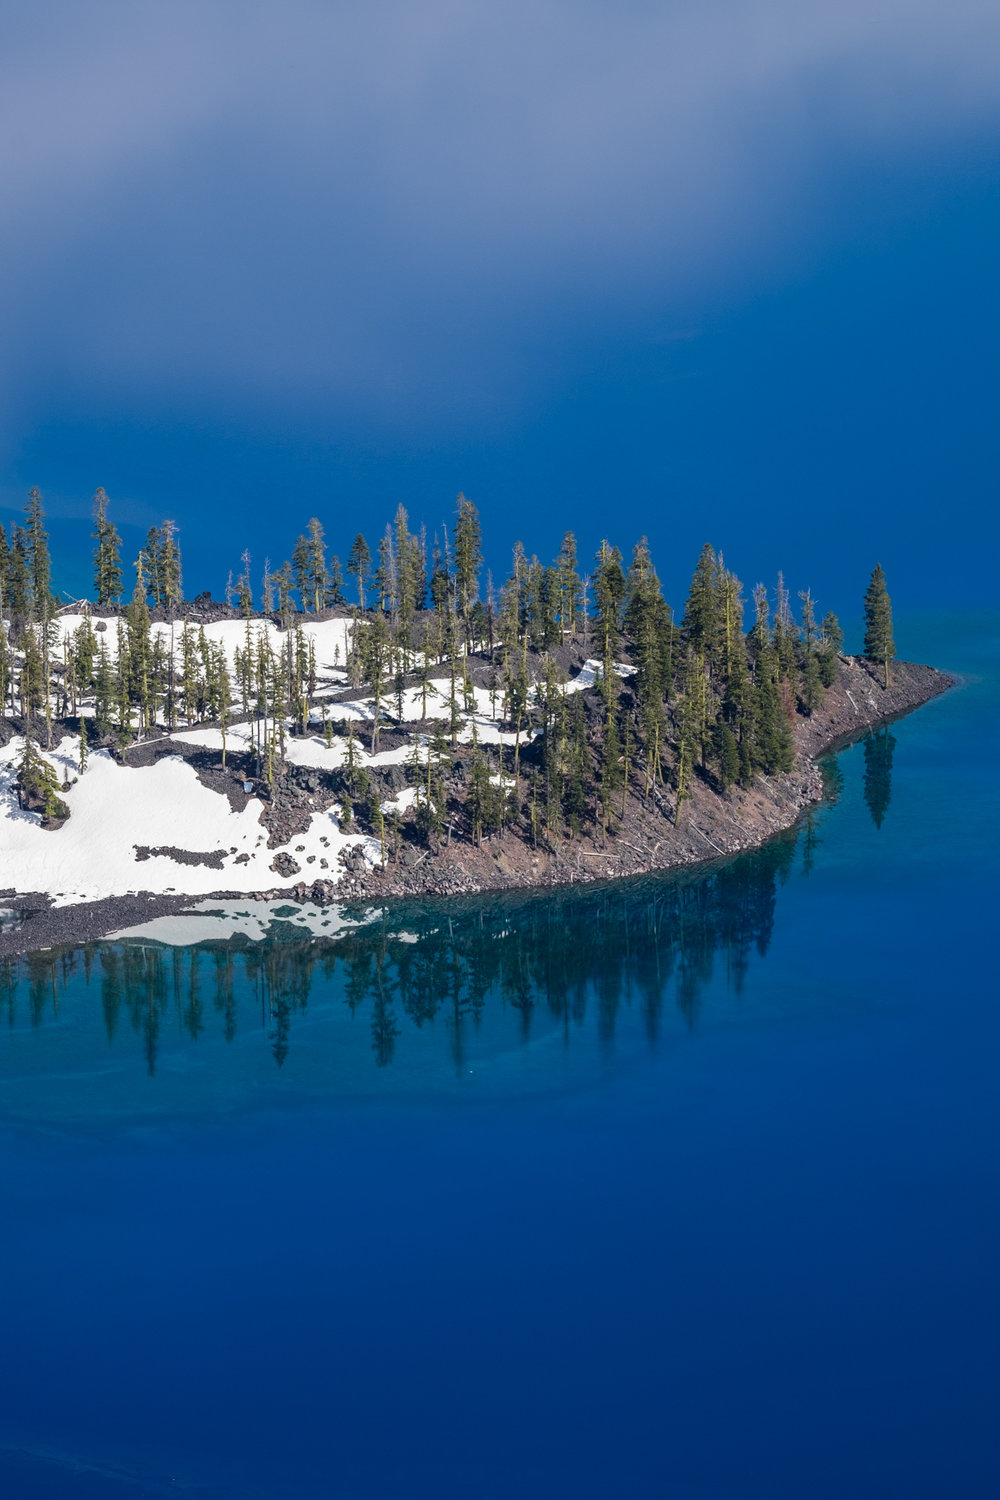 A small section of Wizard Island reflects in the crystal blue lake.